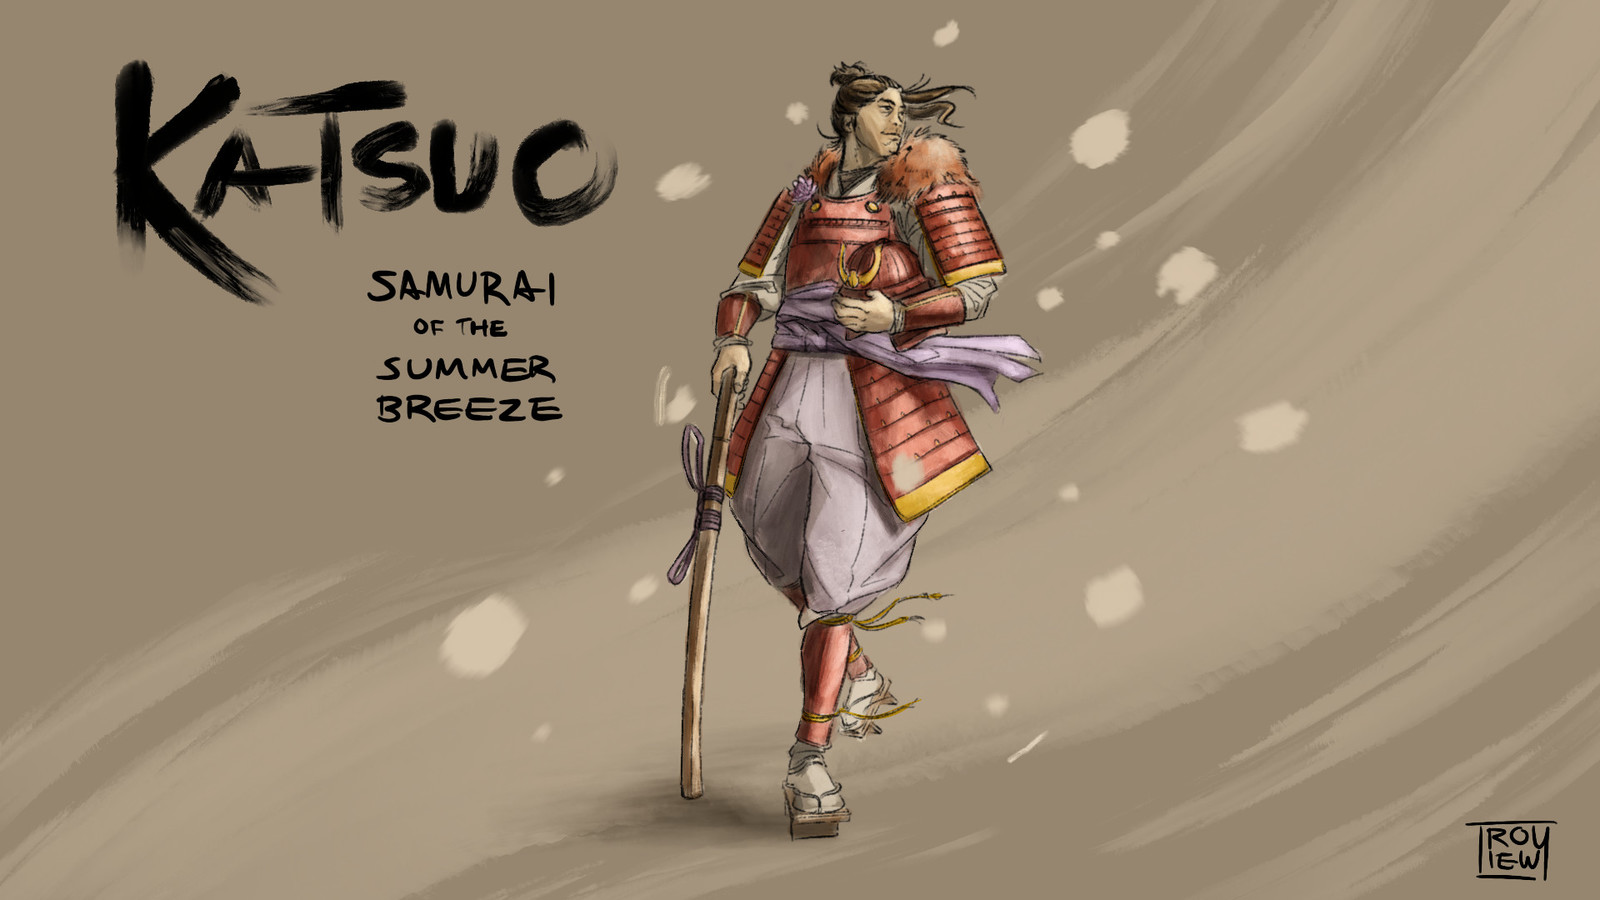 I intended for Katsuo to be an example of a Samurai untested by actual battle. Rather than martial force, he opts to focus on being a presence about town and in court society. As such he's made a name for himself as the Samurai of the Summer Breeze.